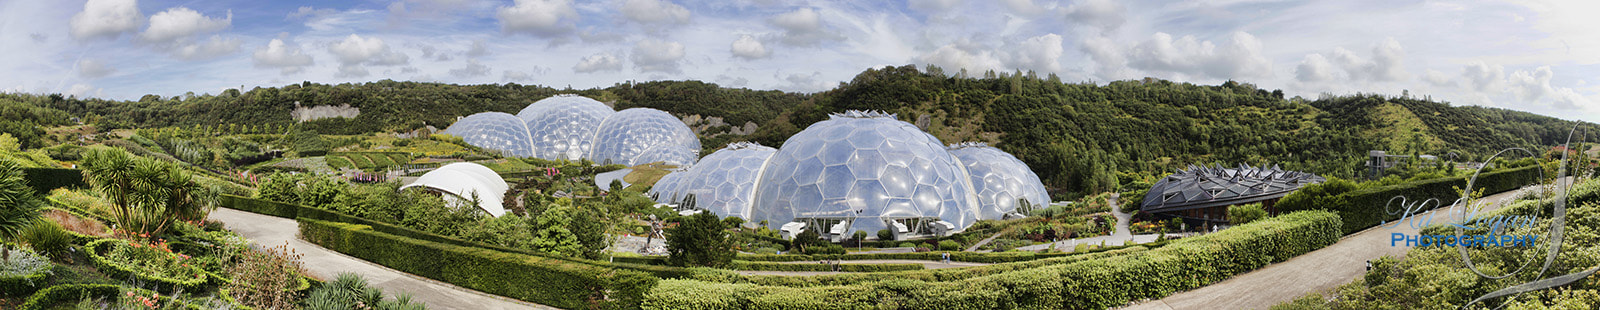 Photograph The Eden Project by Kit Logan on 500px